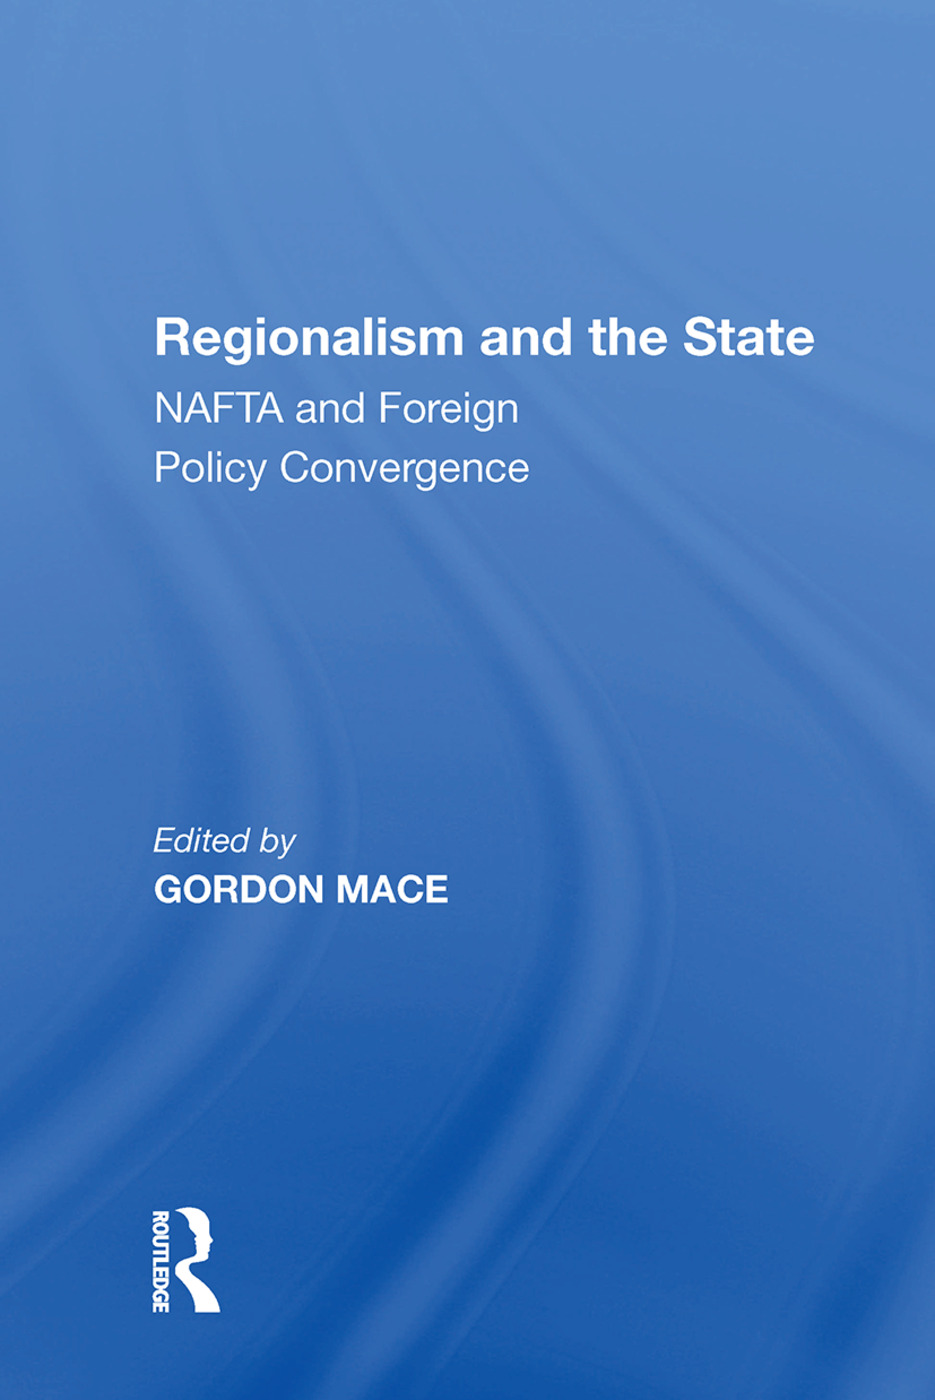 Regionalism and the State: NAFTA and Foreign Policy Convergence book cover